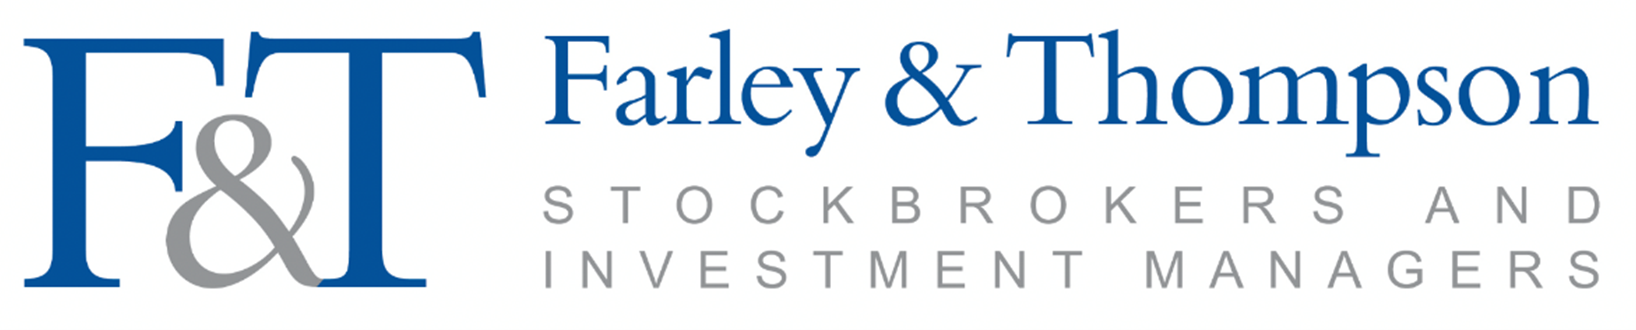 Farley & Thompson Stockbrokers